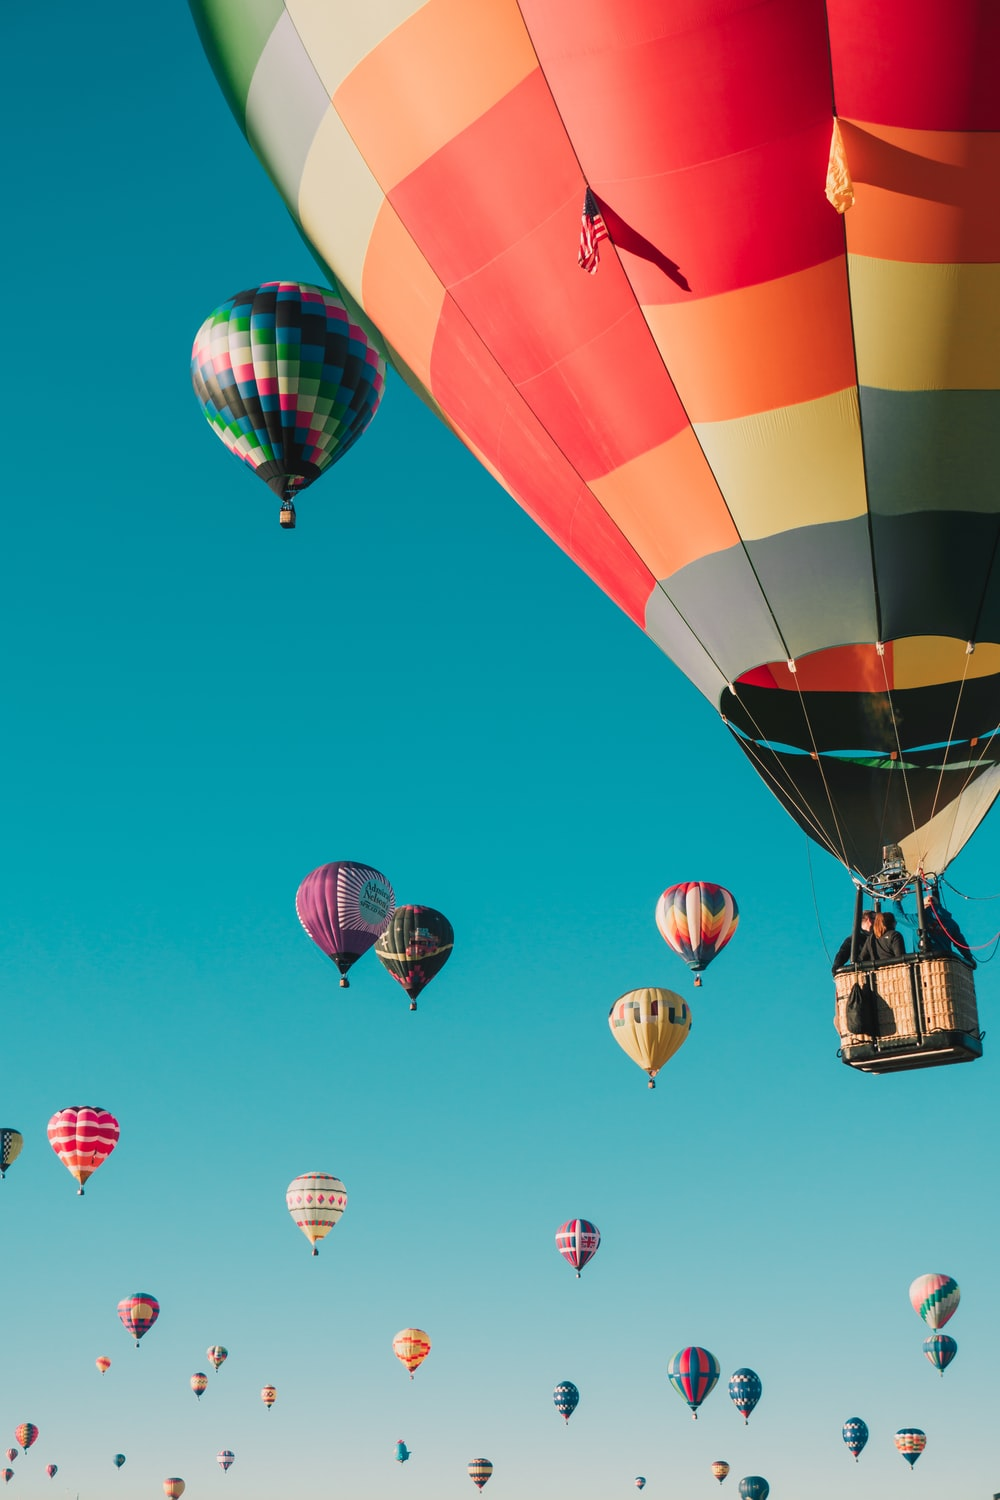 Best 500 Hot Air Balloon Festival Pictures Download Free Images